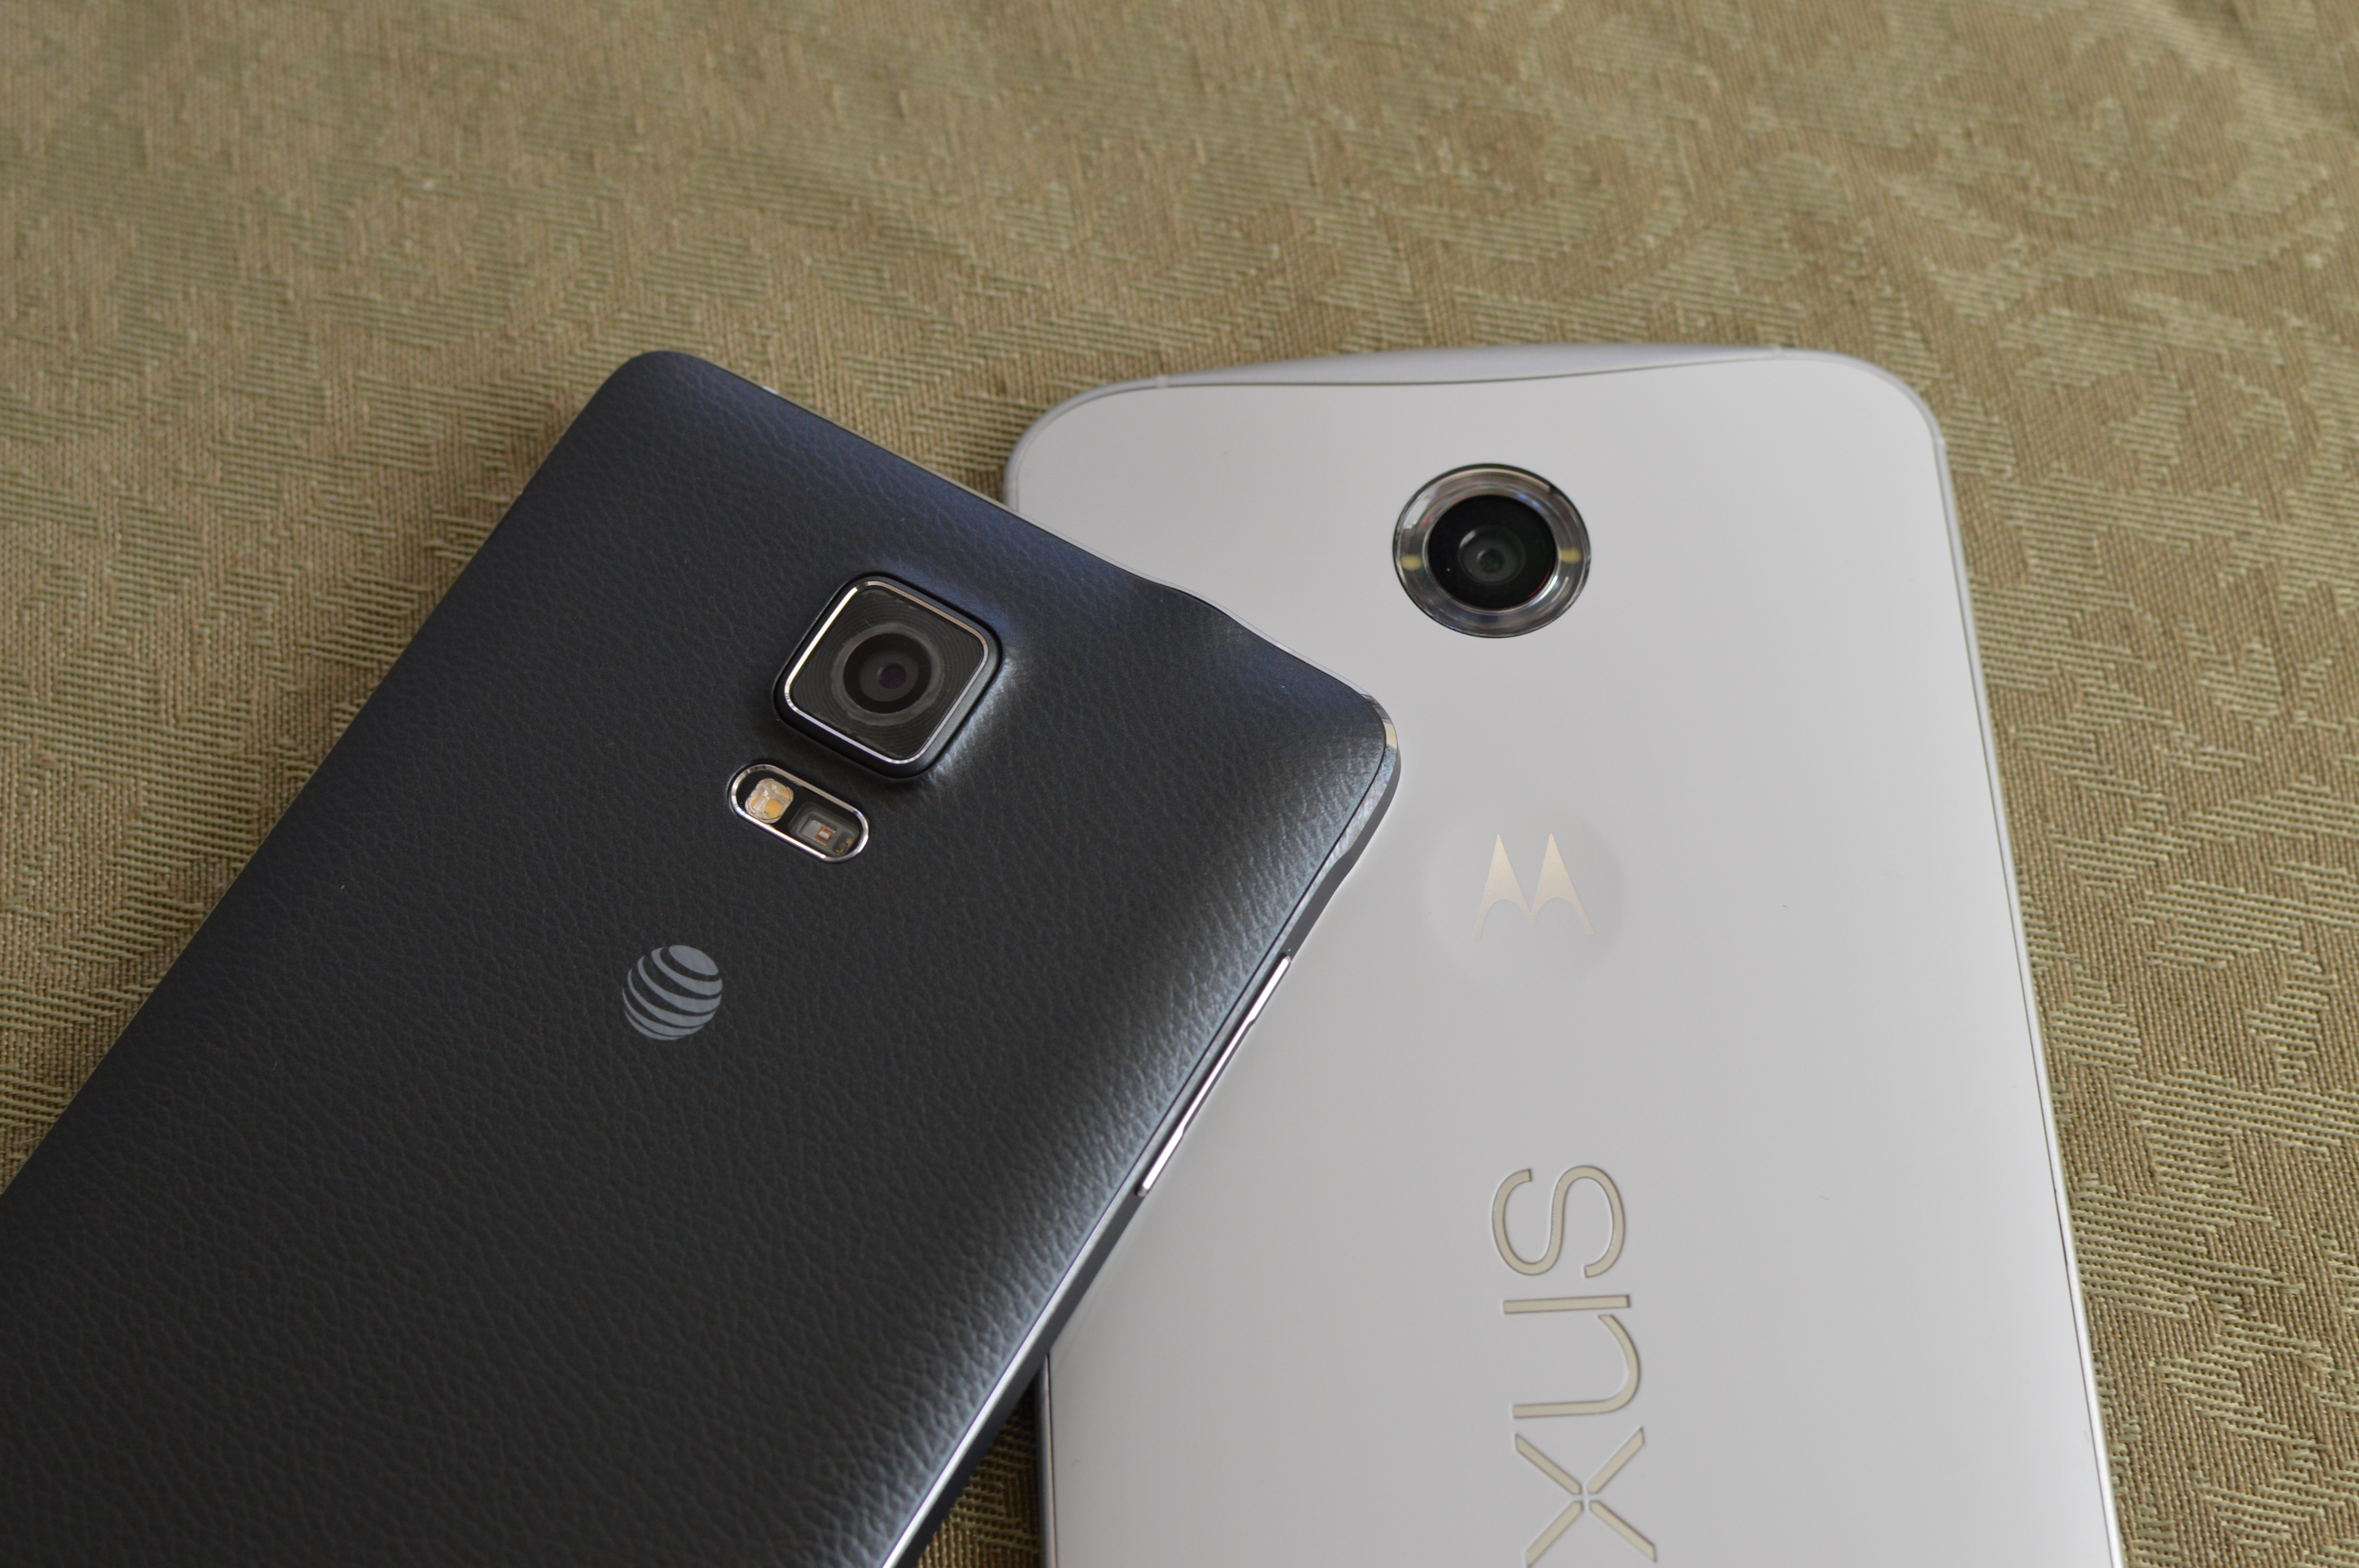 8 Common Galaxy Note 4 Problems & How to Fix Them